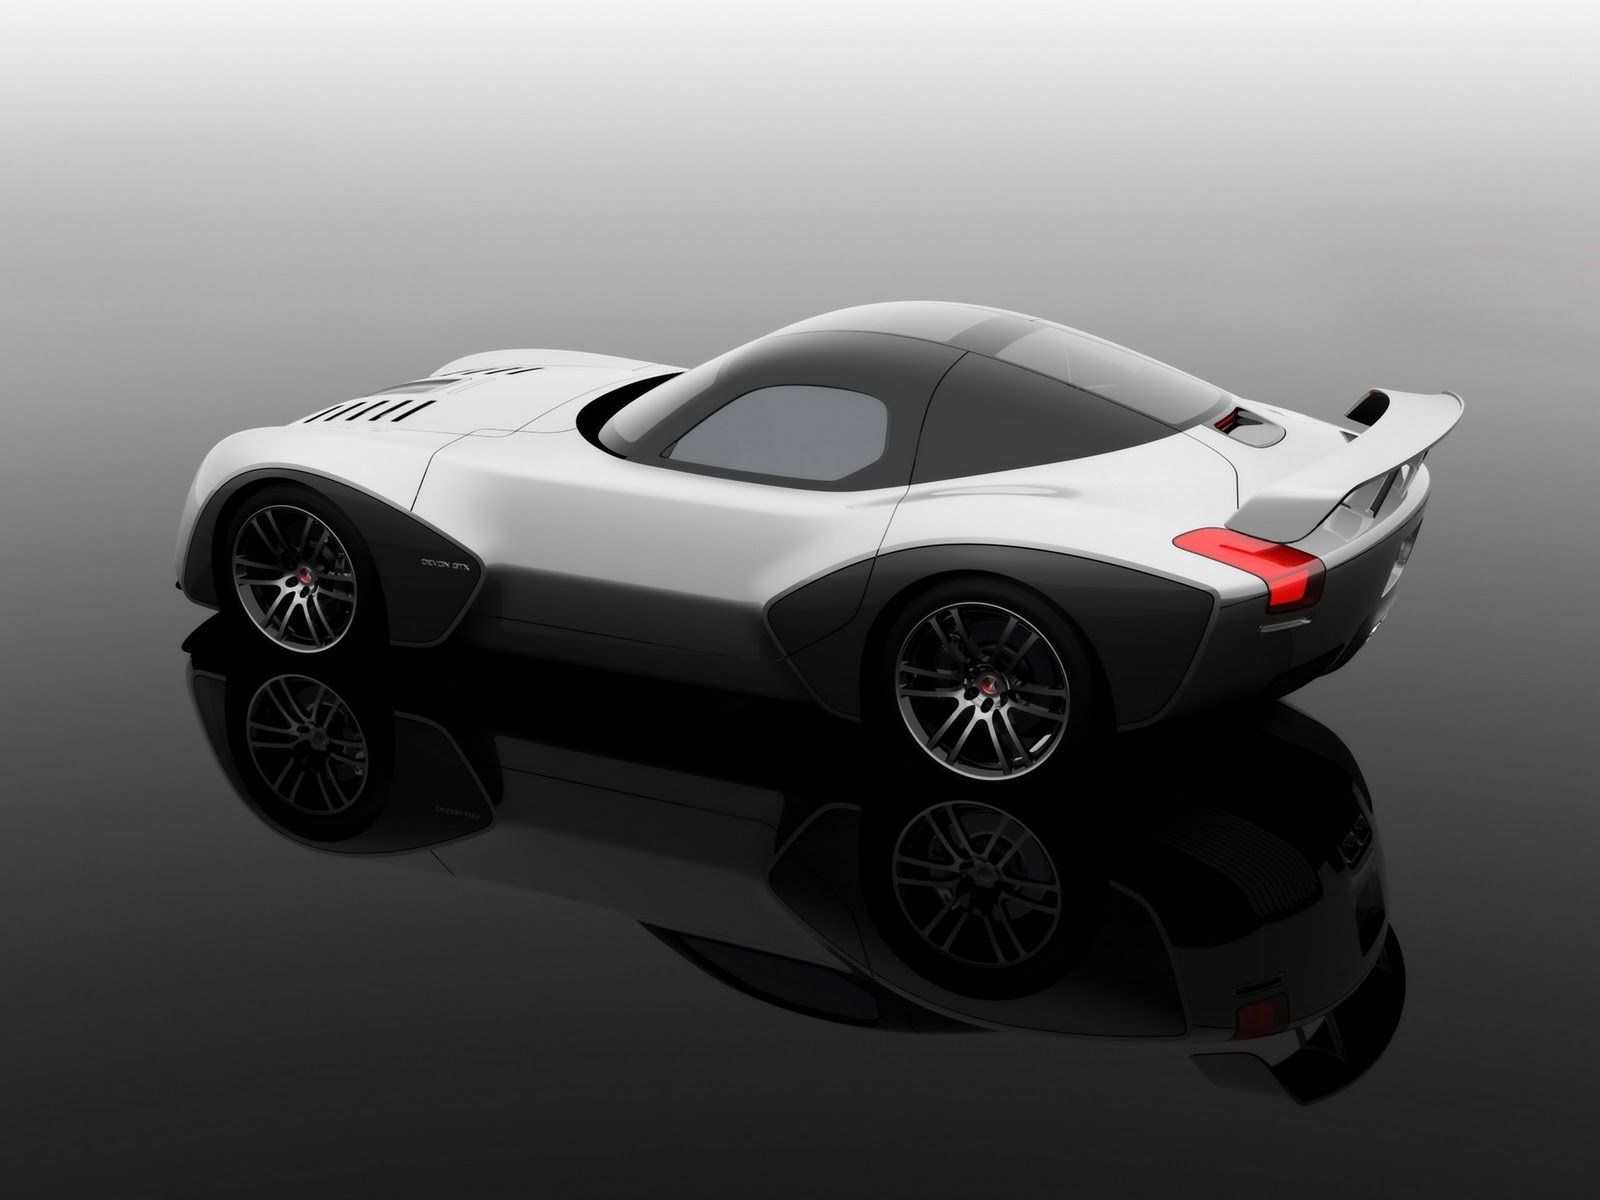 New Cars Hd Wallpapers 2010 Devon Gtx On This Month